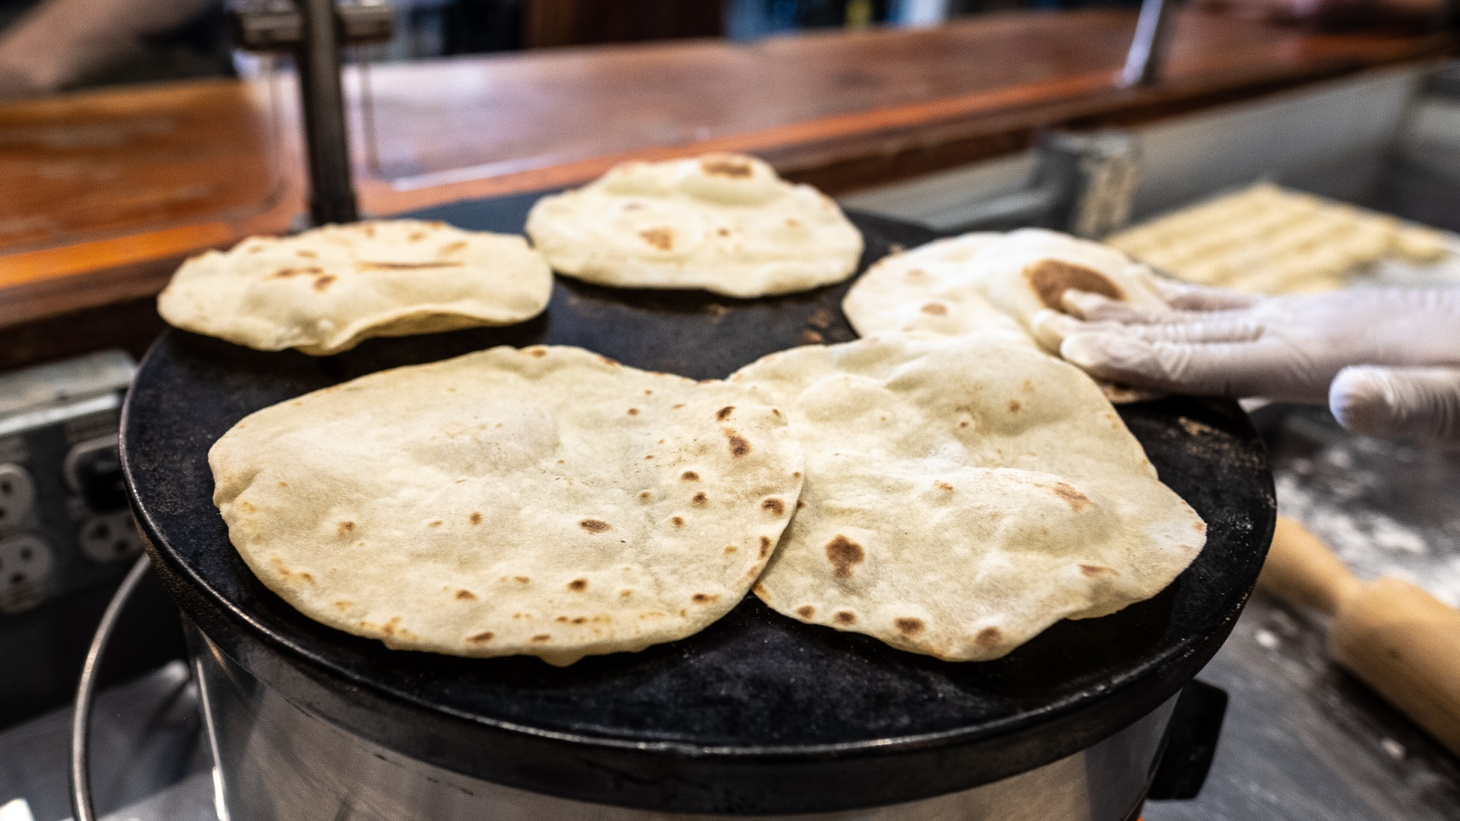 Reigning tortilla champ HomeState is ousted by Anchos — the first Fuerte Four finalist from the Inland Empire.